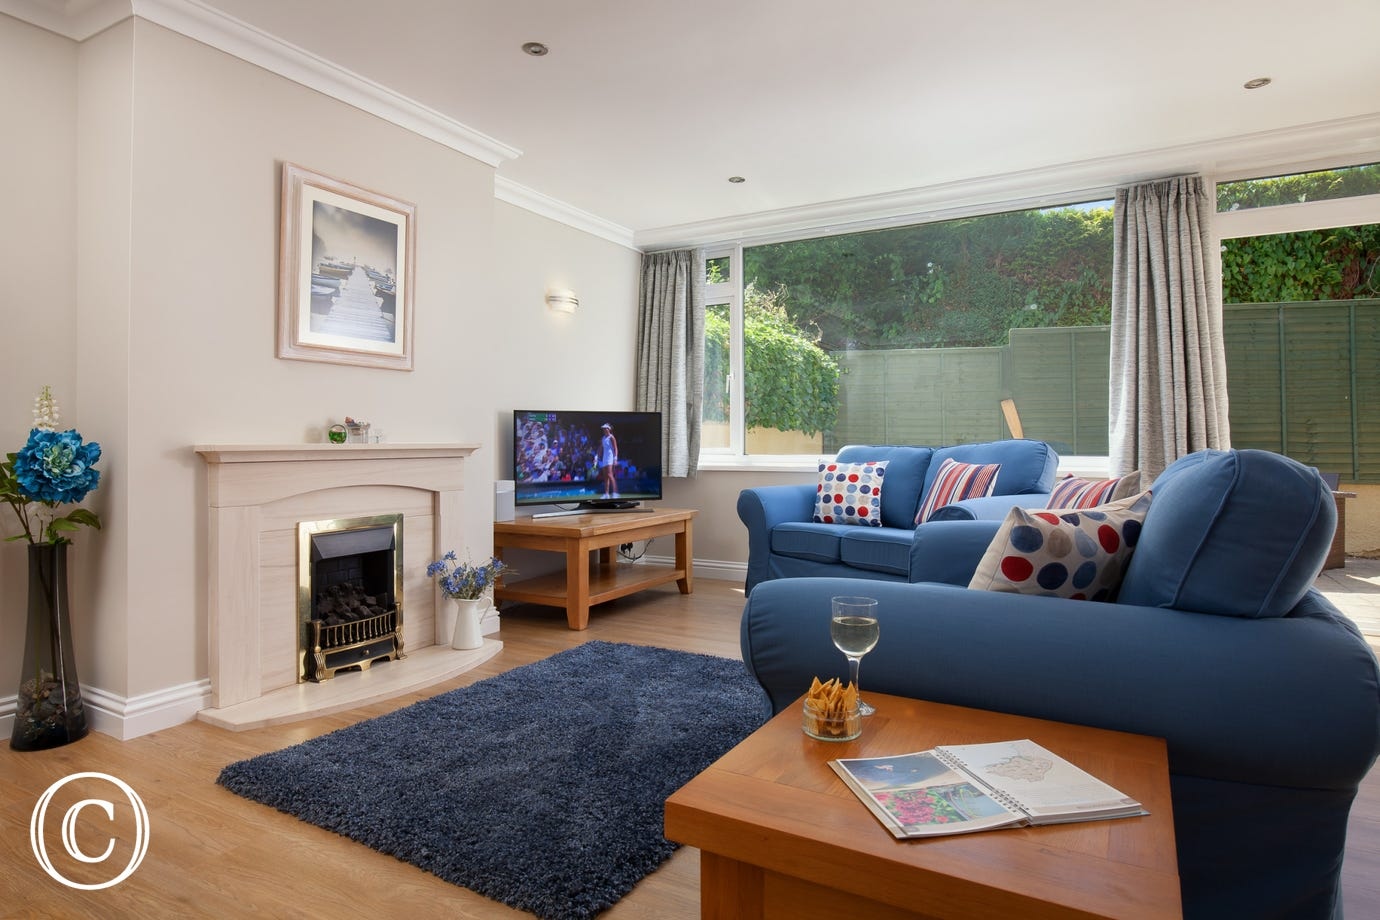 stylish living room with smart TV and blue sofas